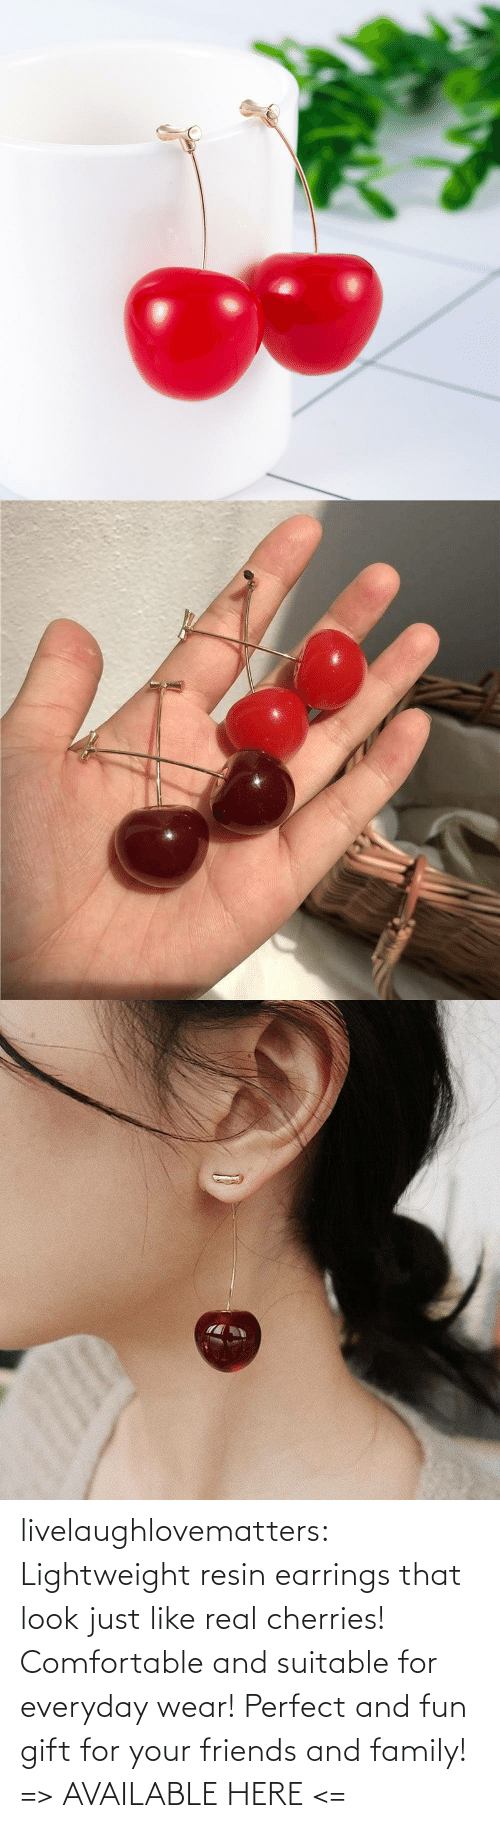 just: livelaughlovematters: Lightweight resin earrings that look just like real cherries! Comfortable and suitable for everyday wear! Perfect and fun gift for your friends and family! => AVAILABLE HERE <=